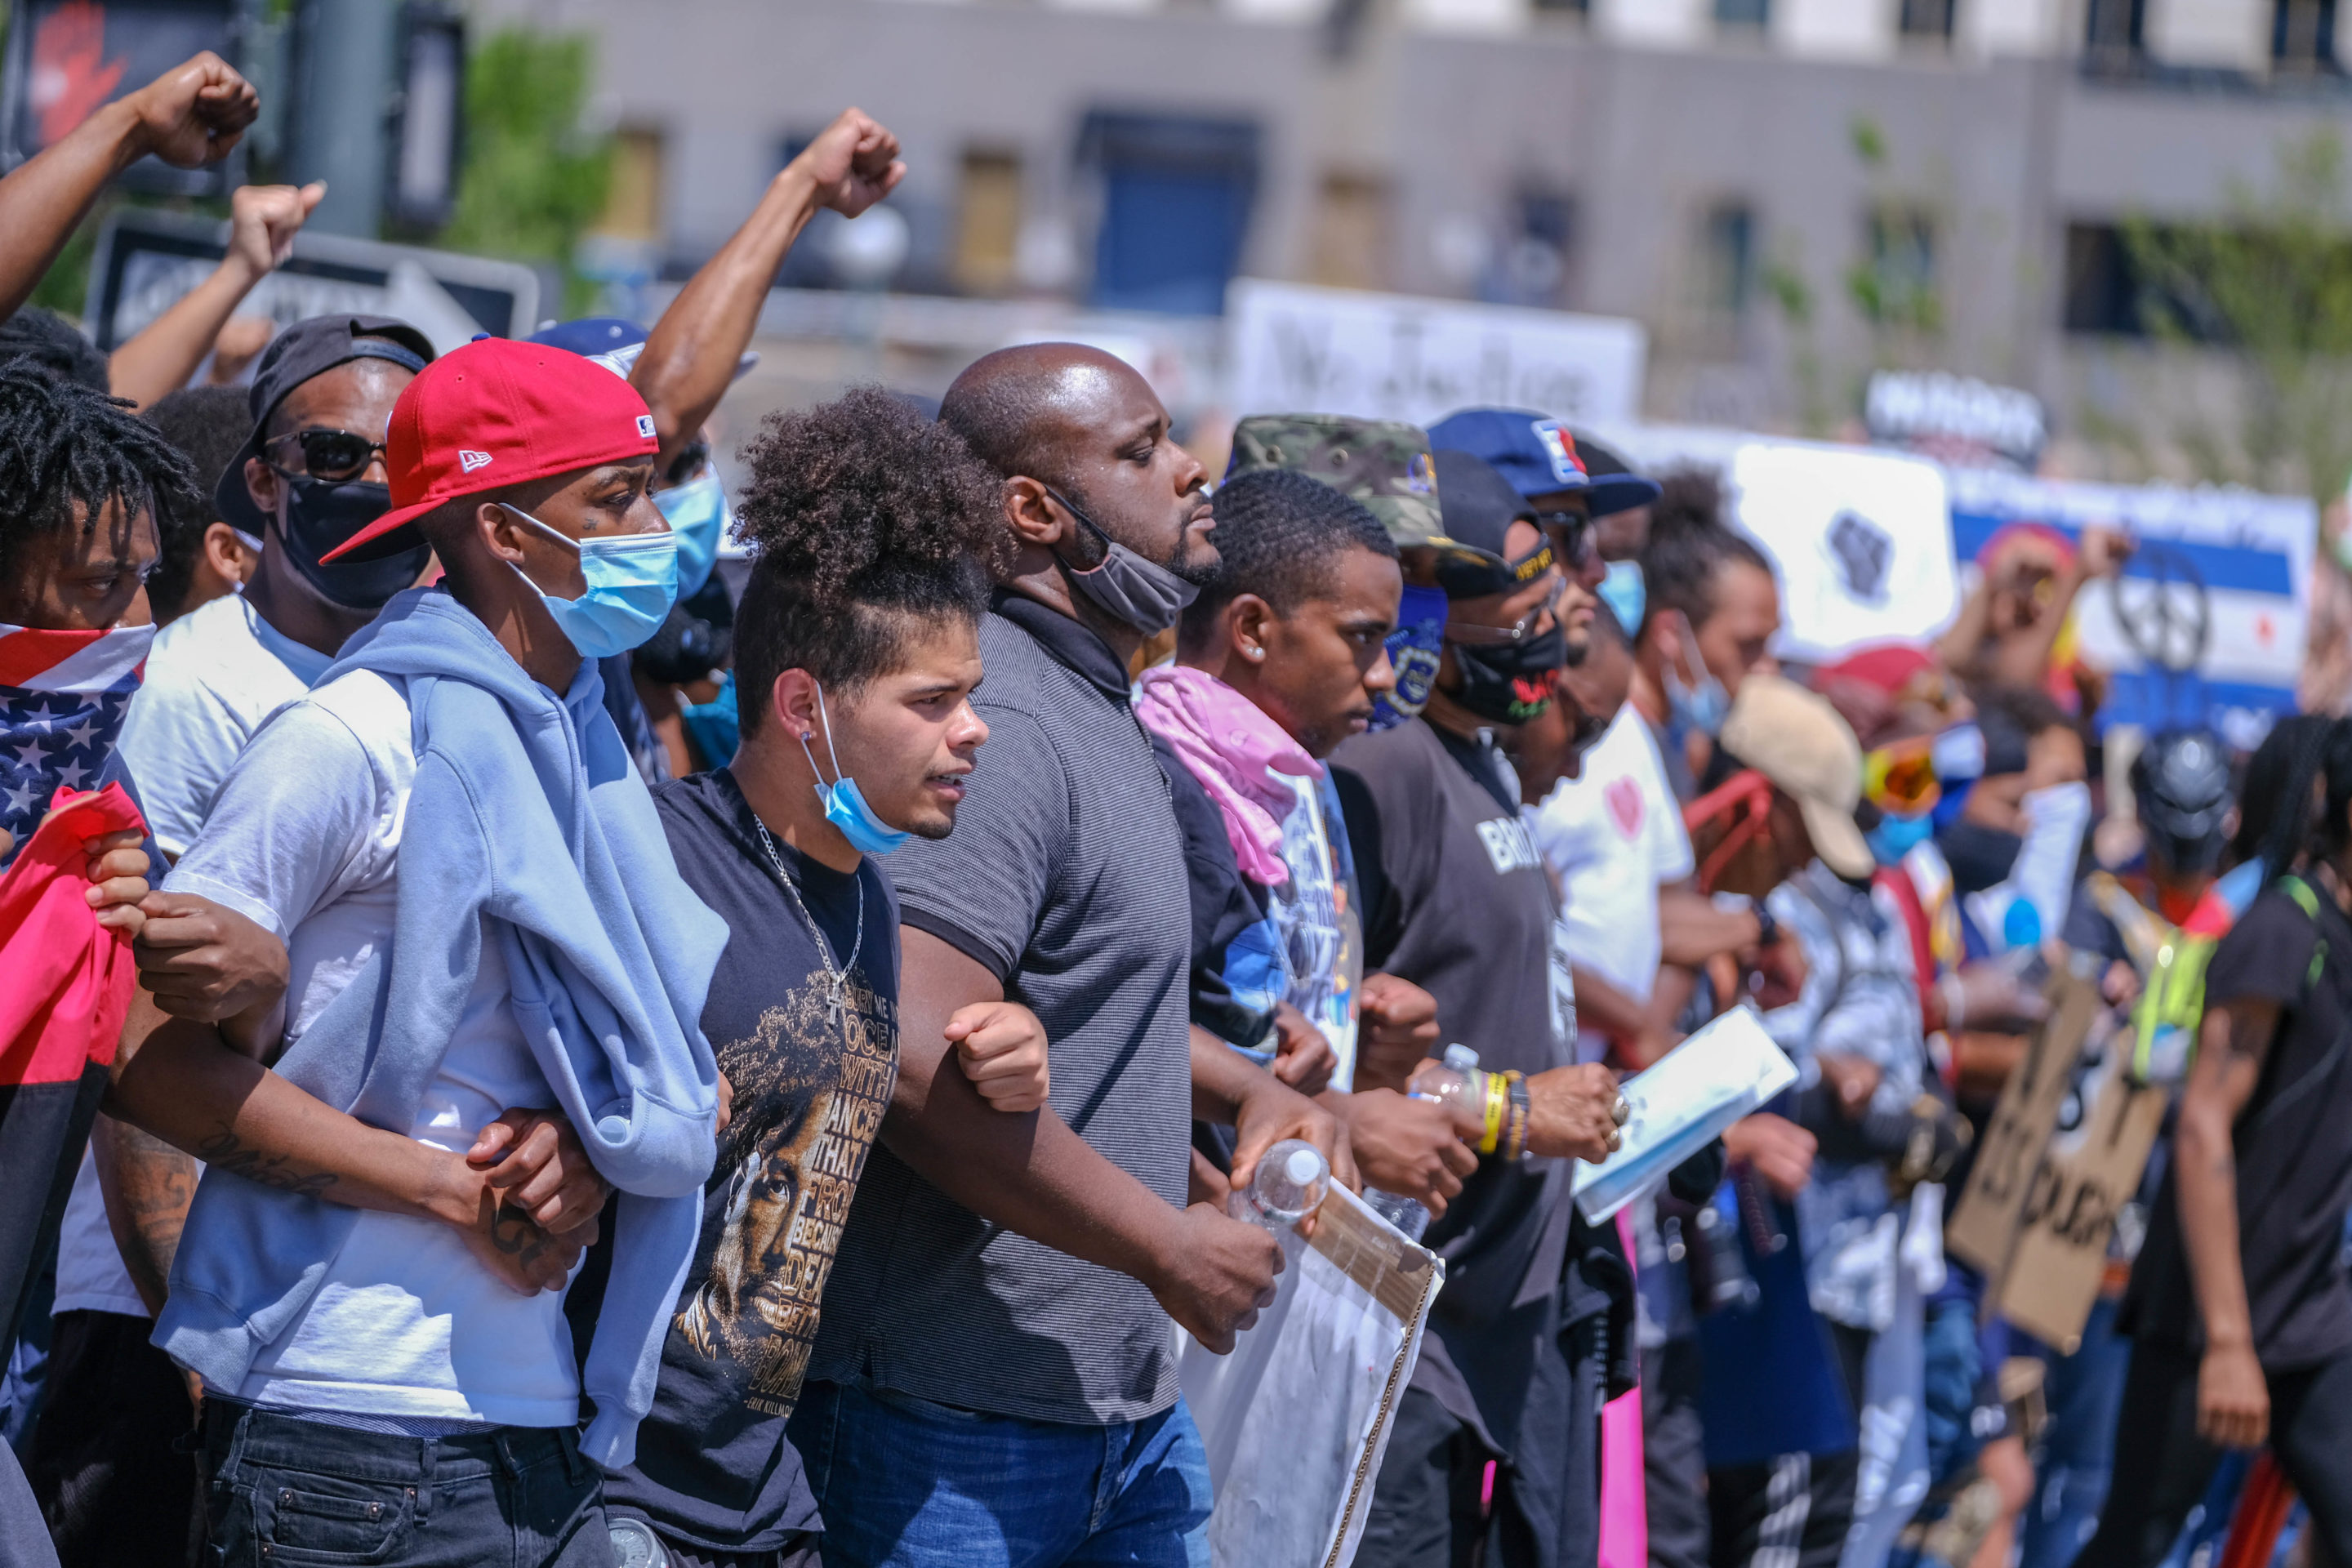 Anderson leads peaceful march, condemns rioting in Saturday protest